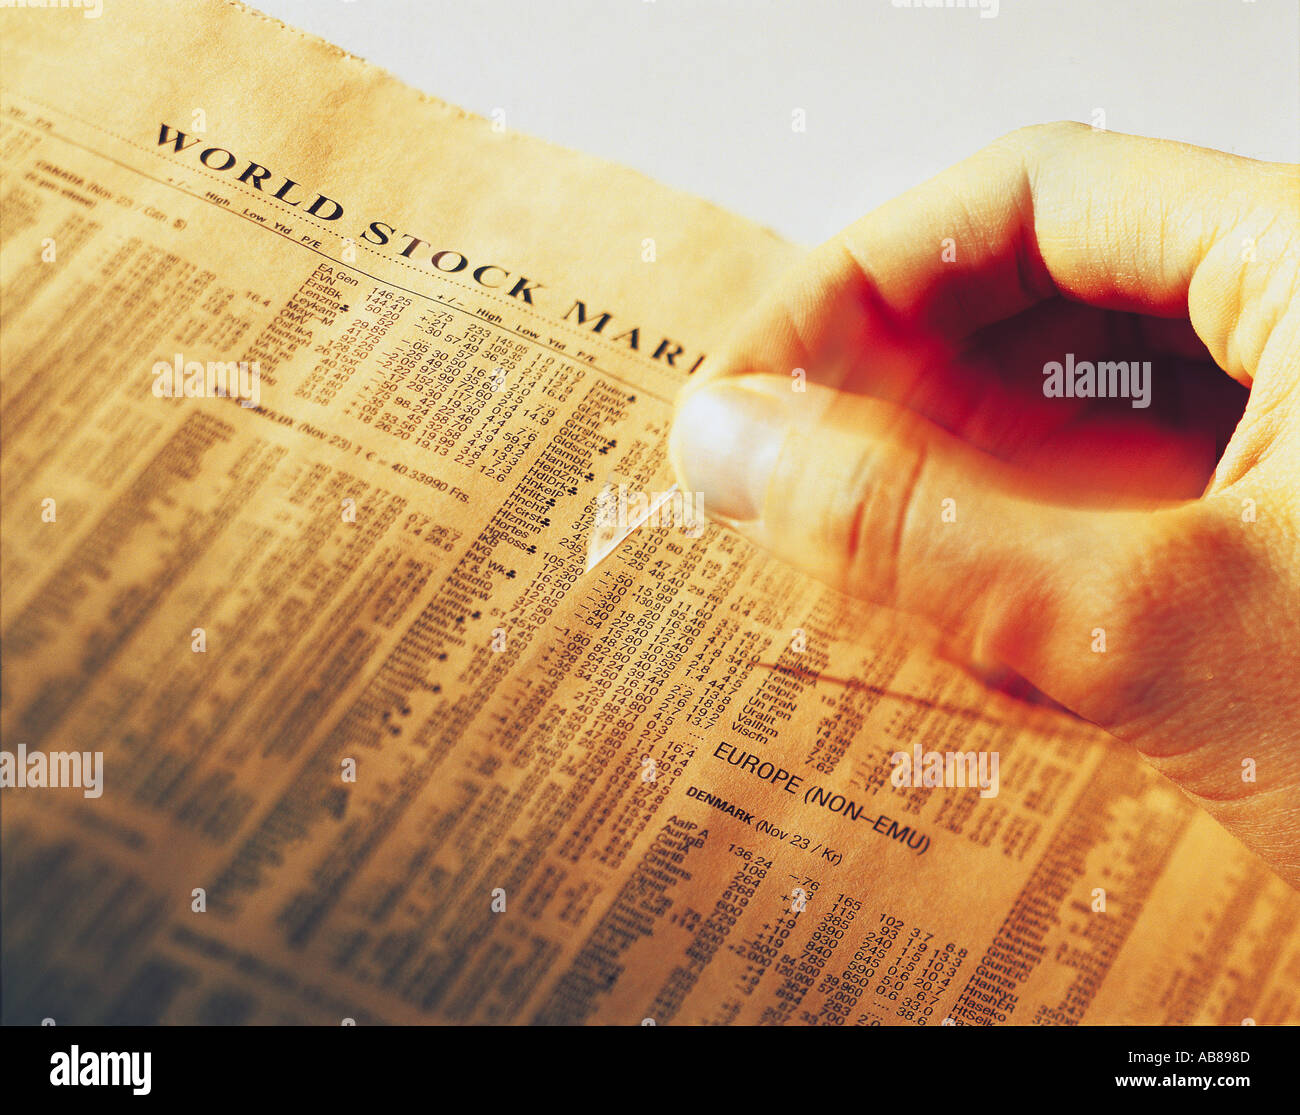 Stock market news - Stock Image